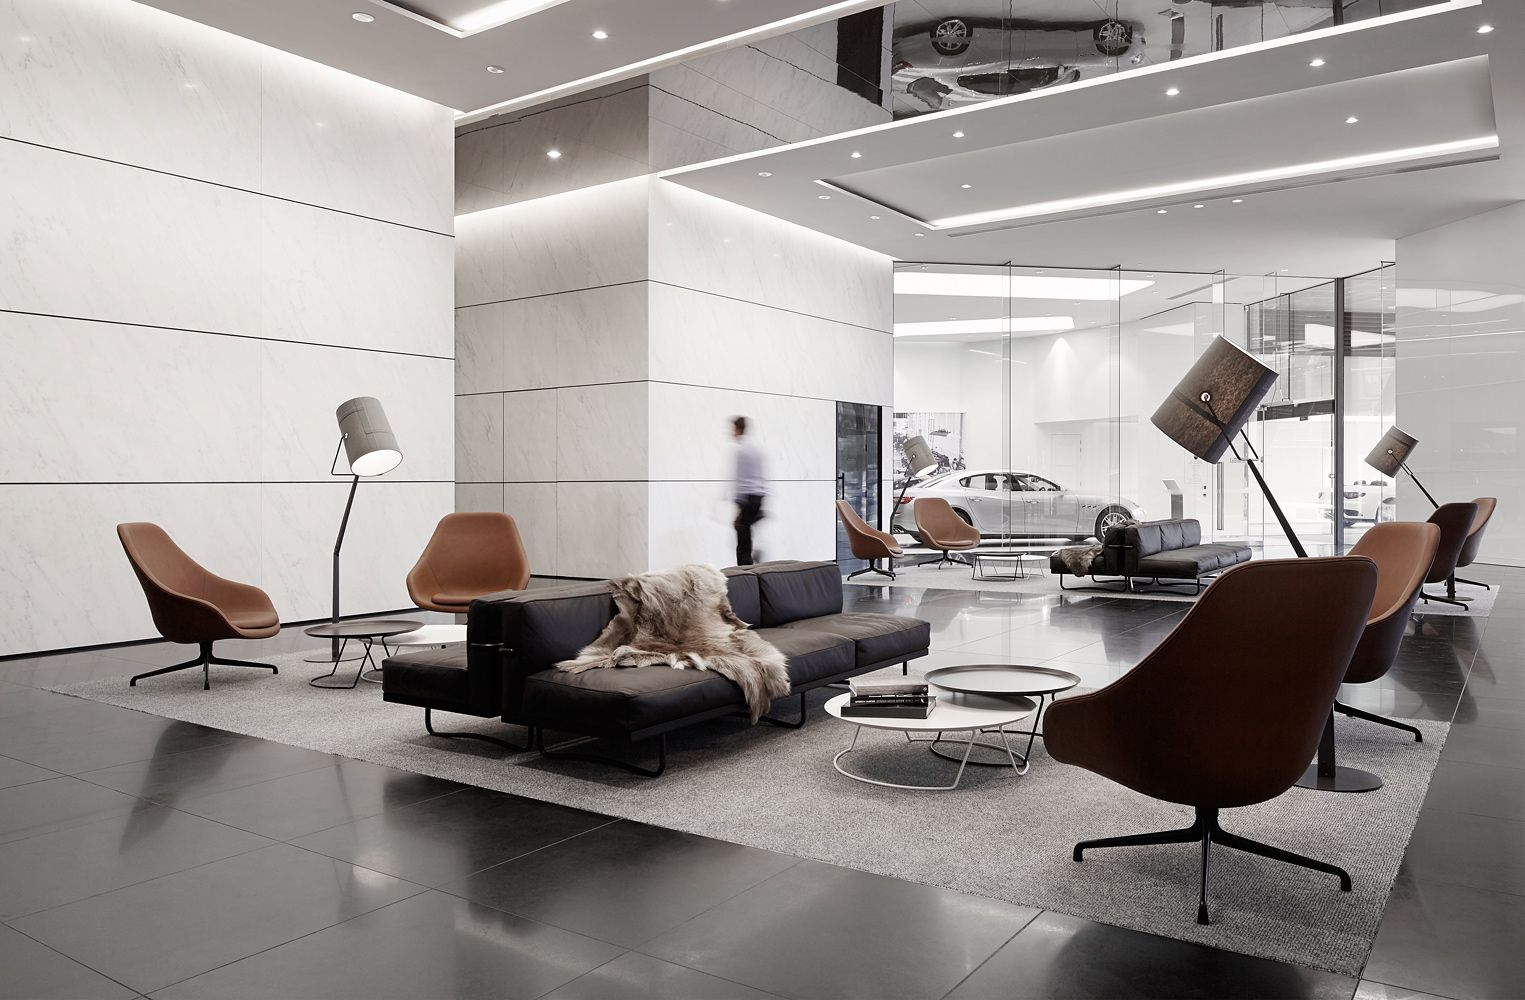 501 Swanson Melbournes Audi And Maserati Dealership By Elenberg Fraser